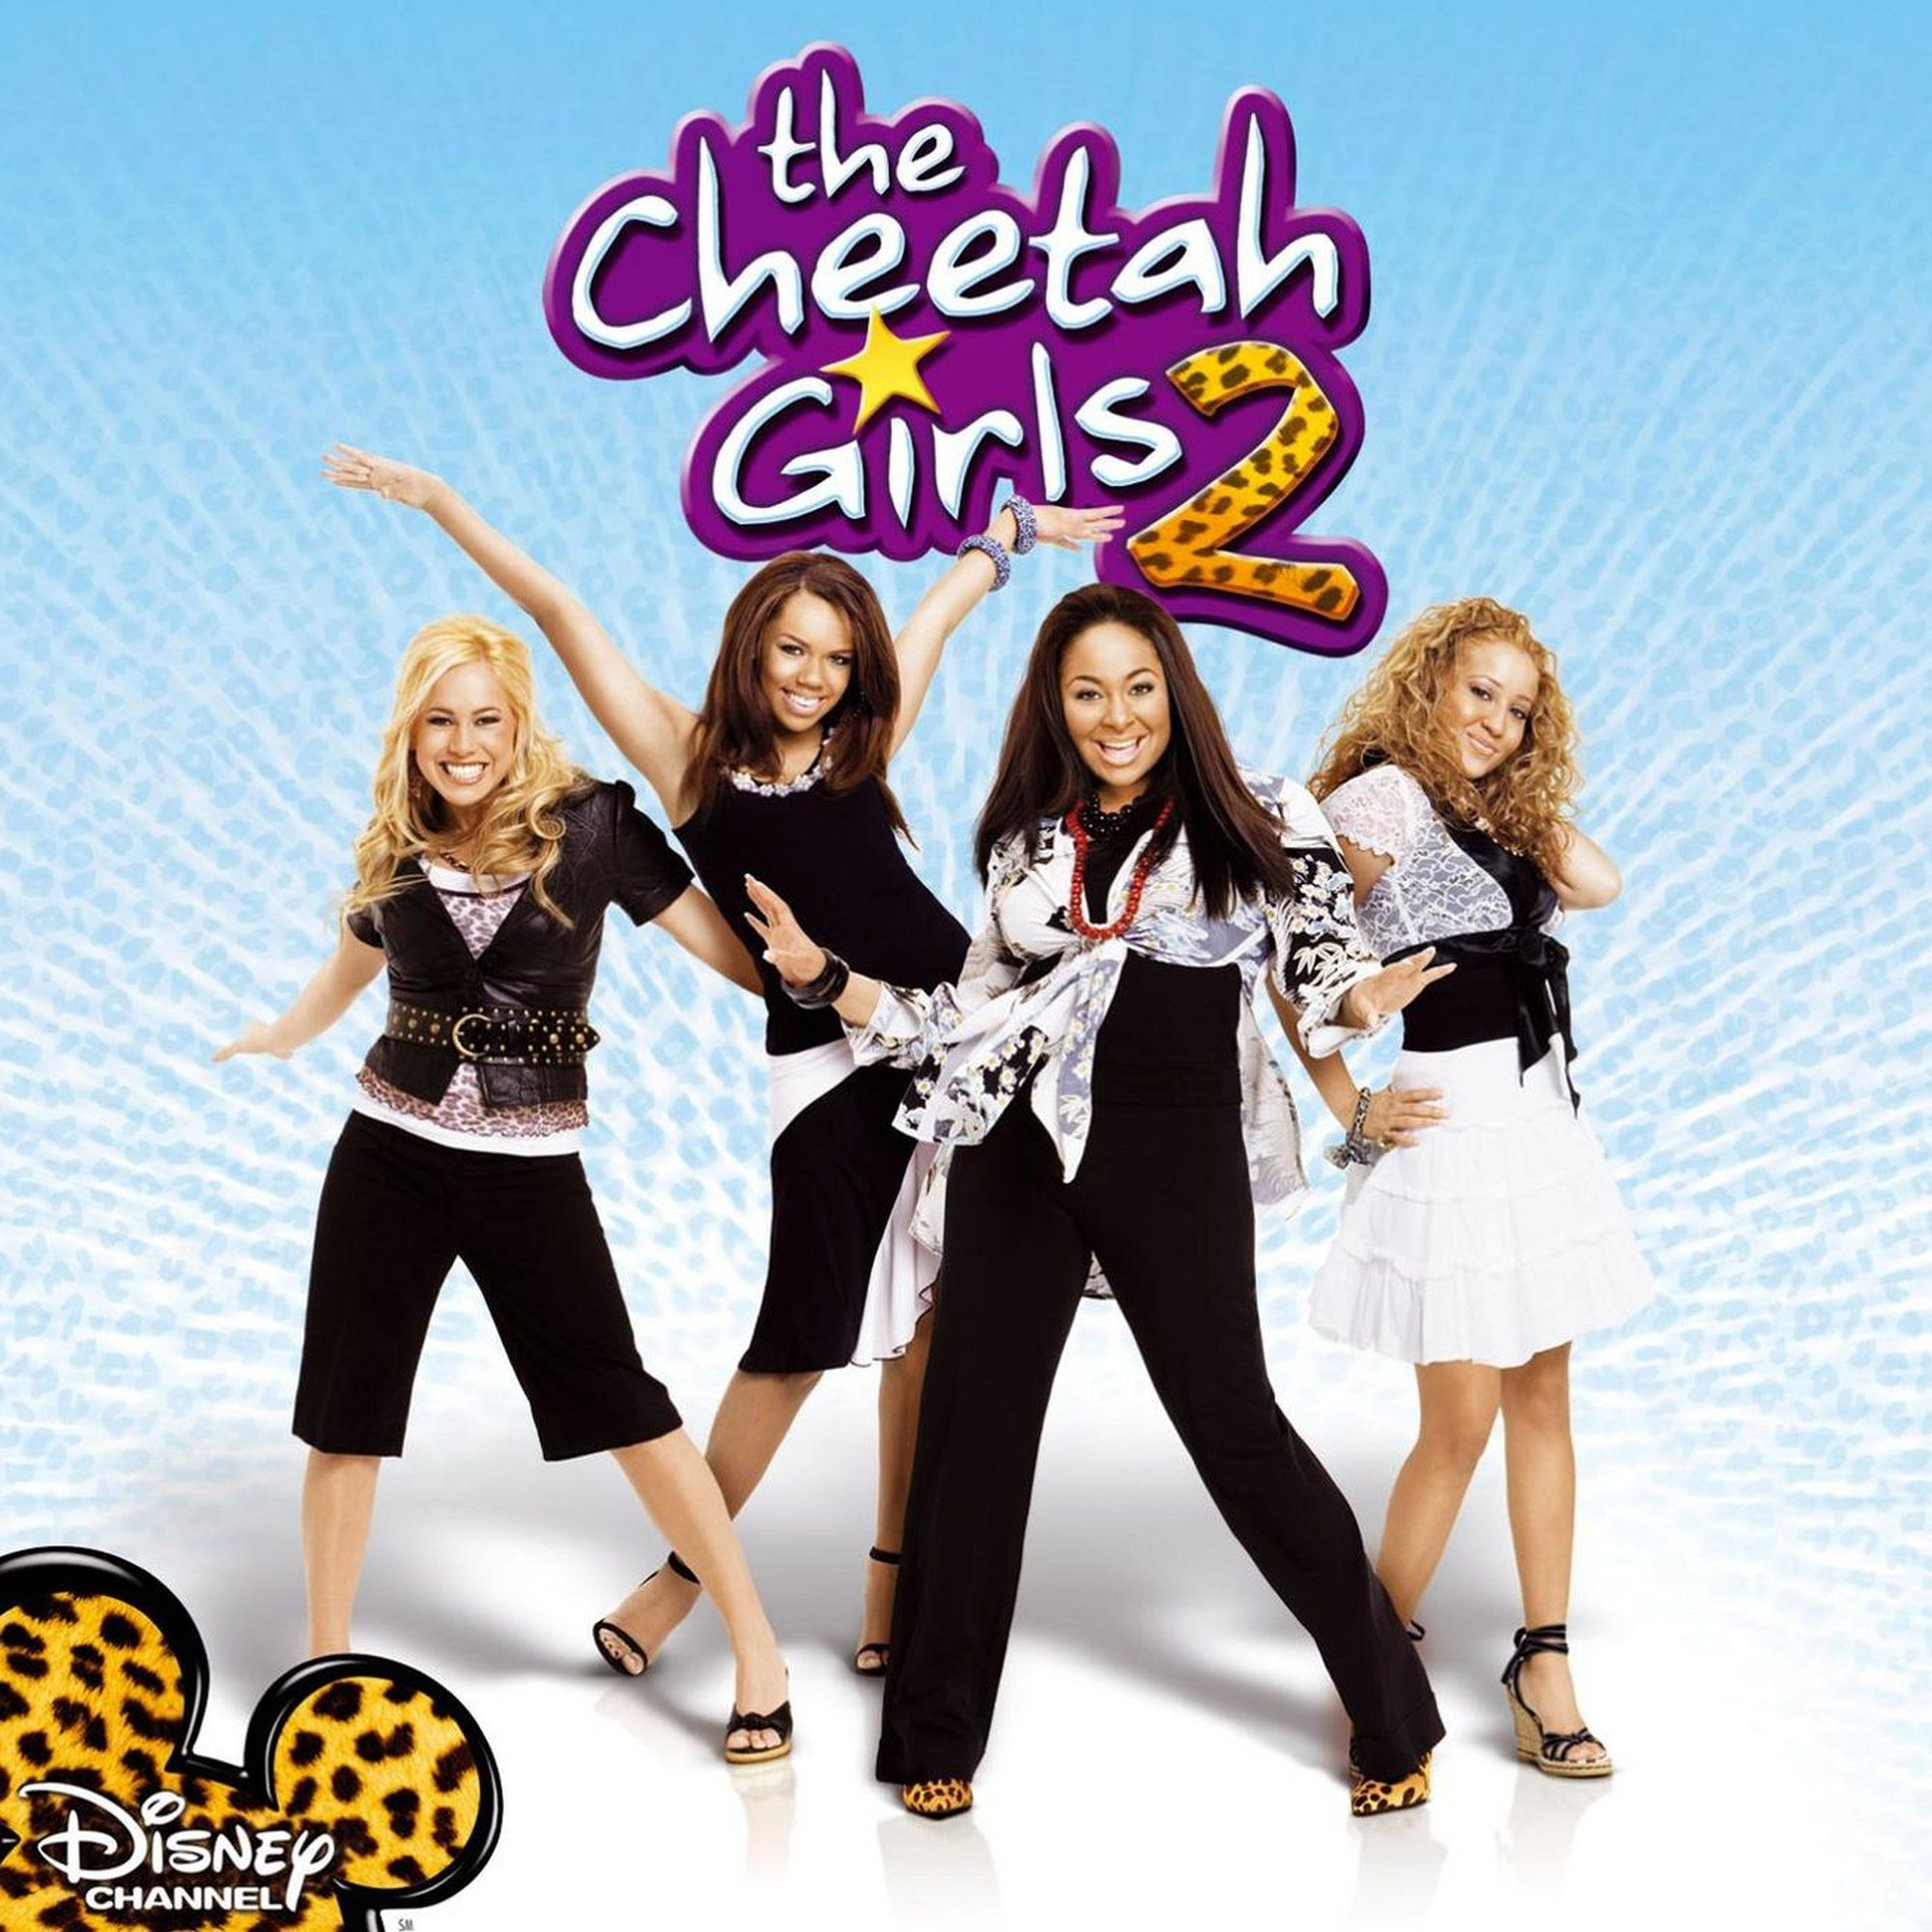 The Cheetah Girls - The Cheetah Girls 2 album cover